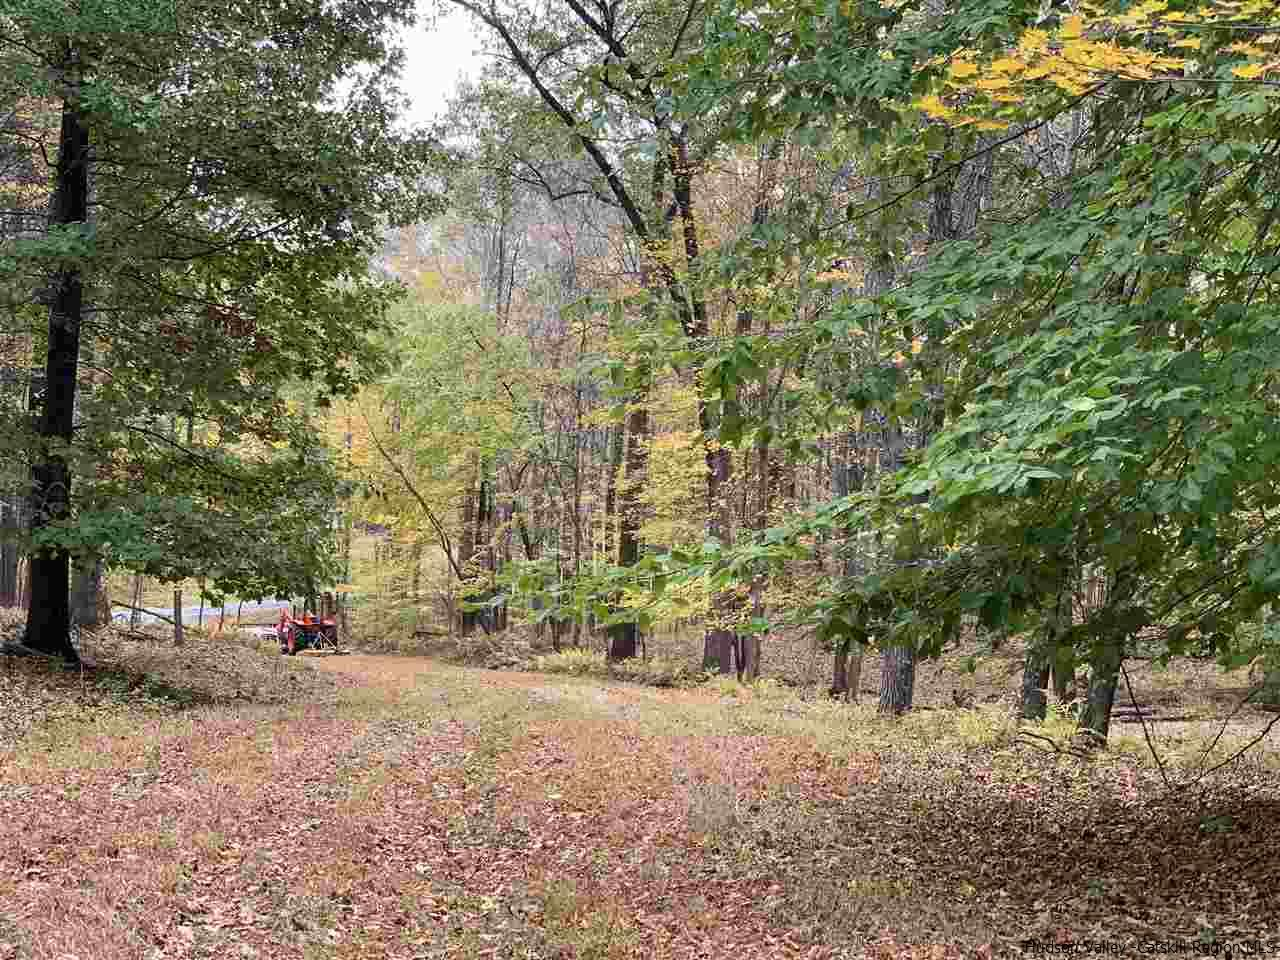 Single Family Home for Sale at TBD Ackert Hook Road TBD Ackert Hook Road Rhinebeck, New York 12572 United States